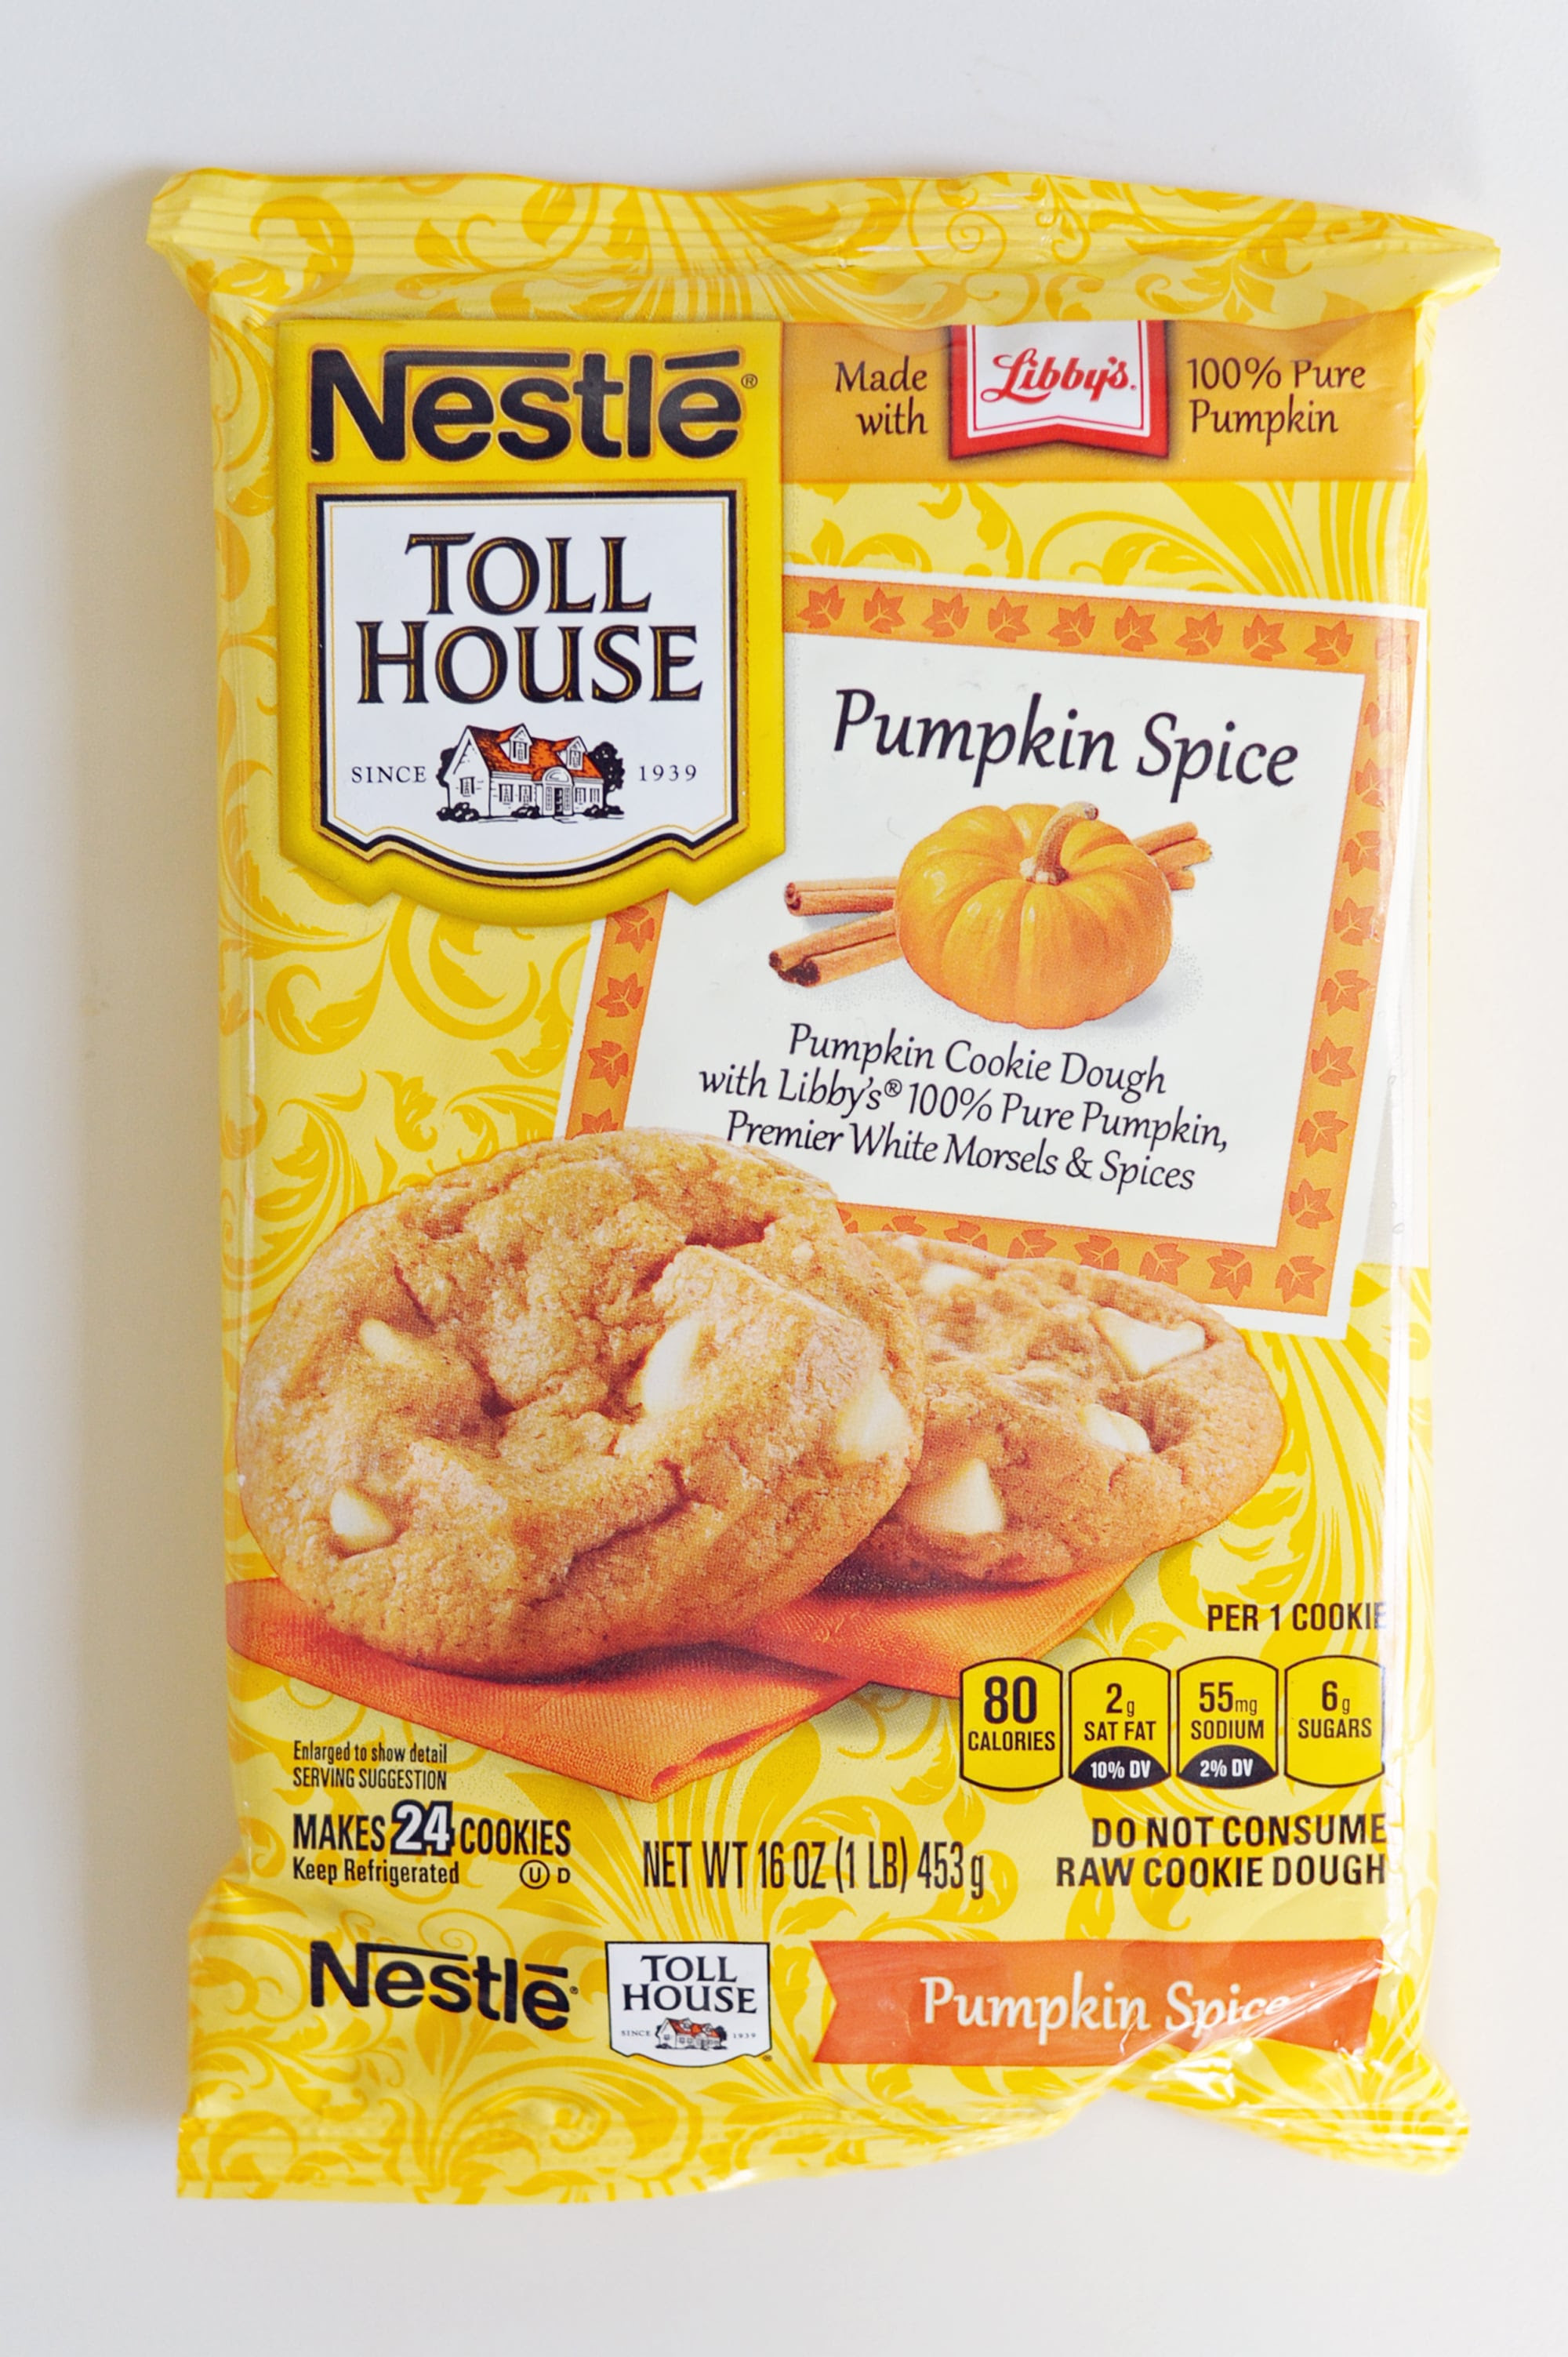 Nestlé Toll House Pumpkin Spice Refrigerated Cookie Dough ...